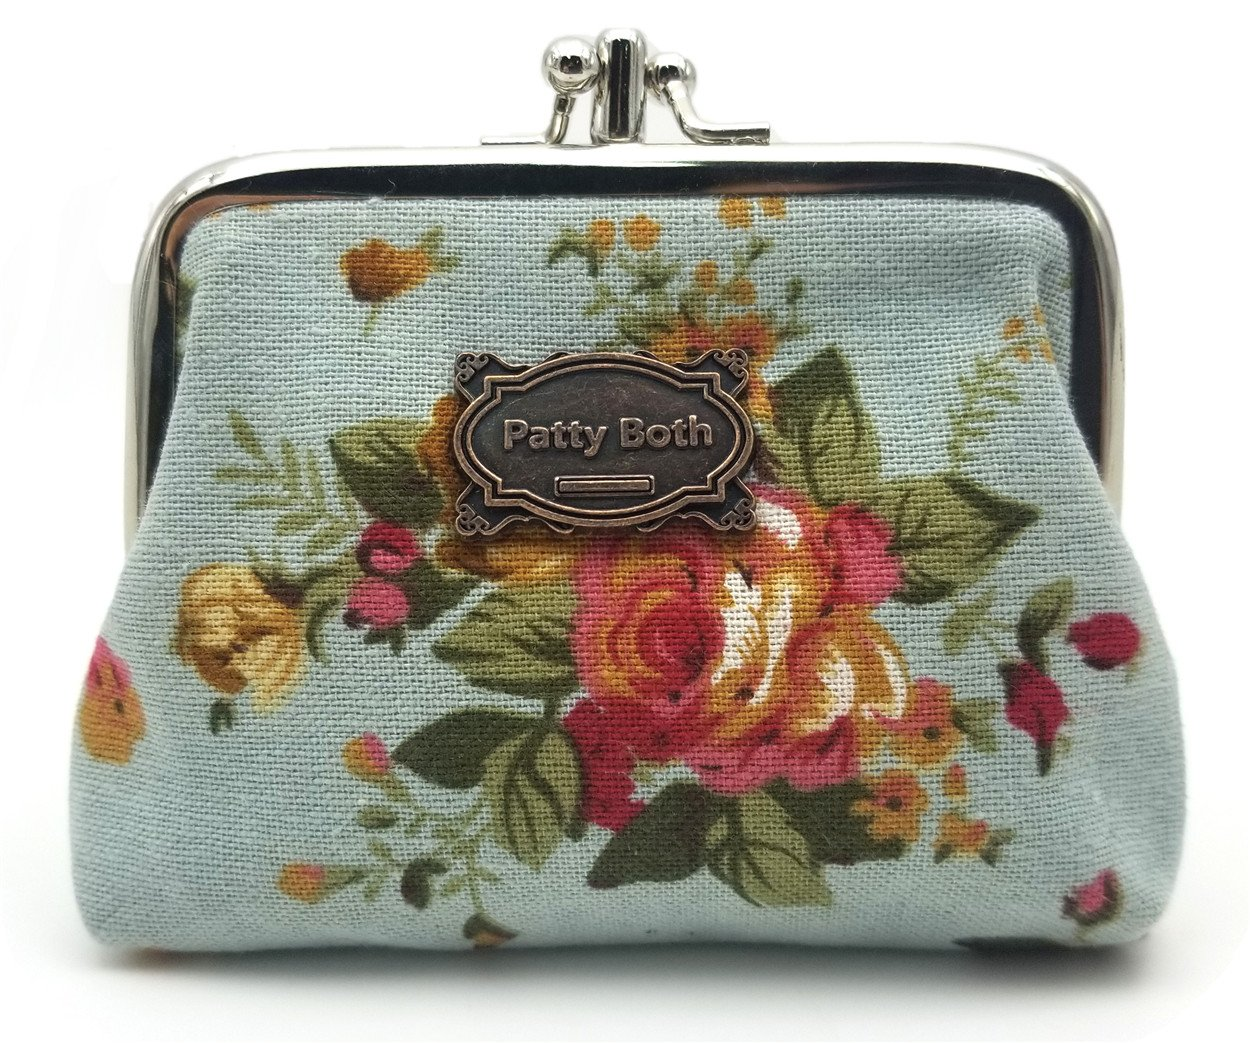 Cute Classic Floral Exquisite Buckle Coin Purse-Patty Both (01) PB10000178